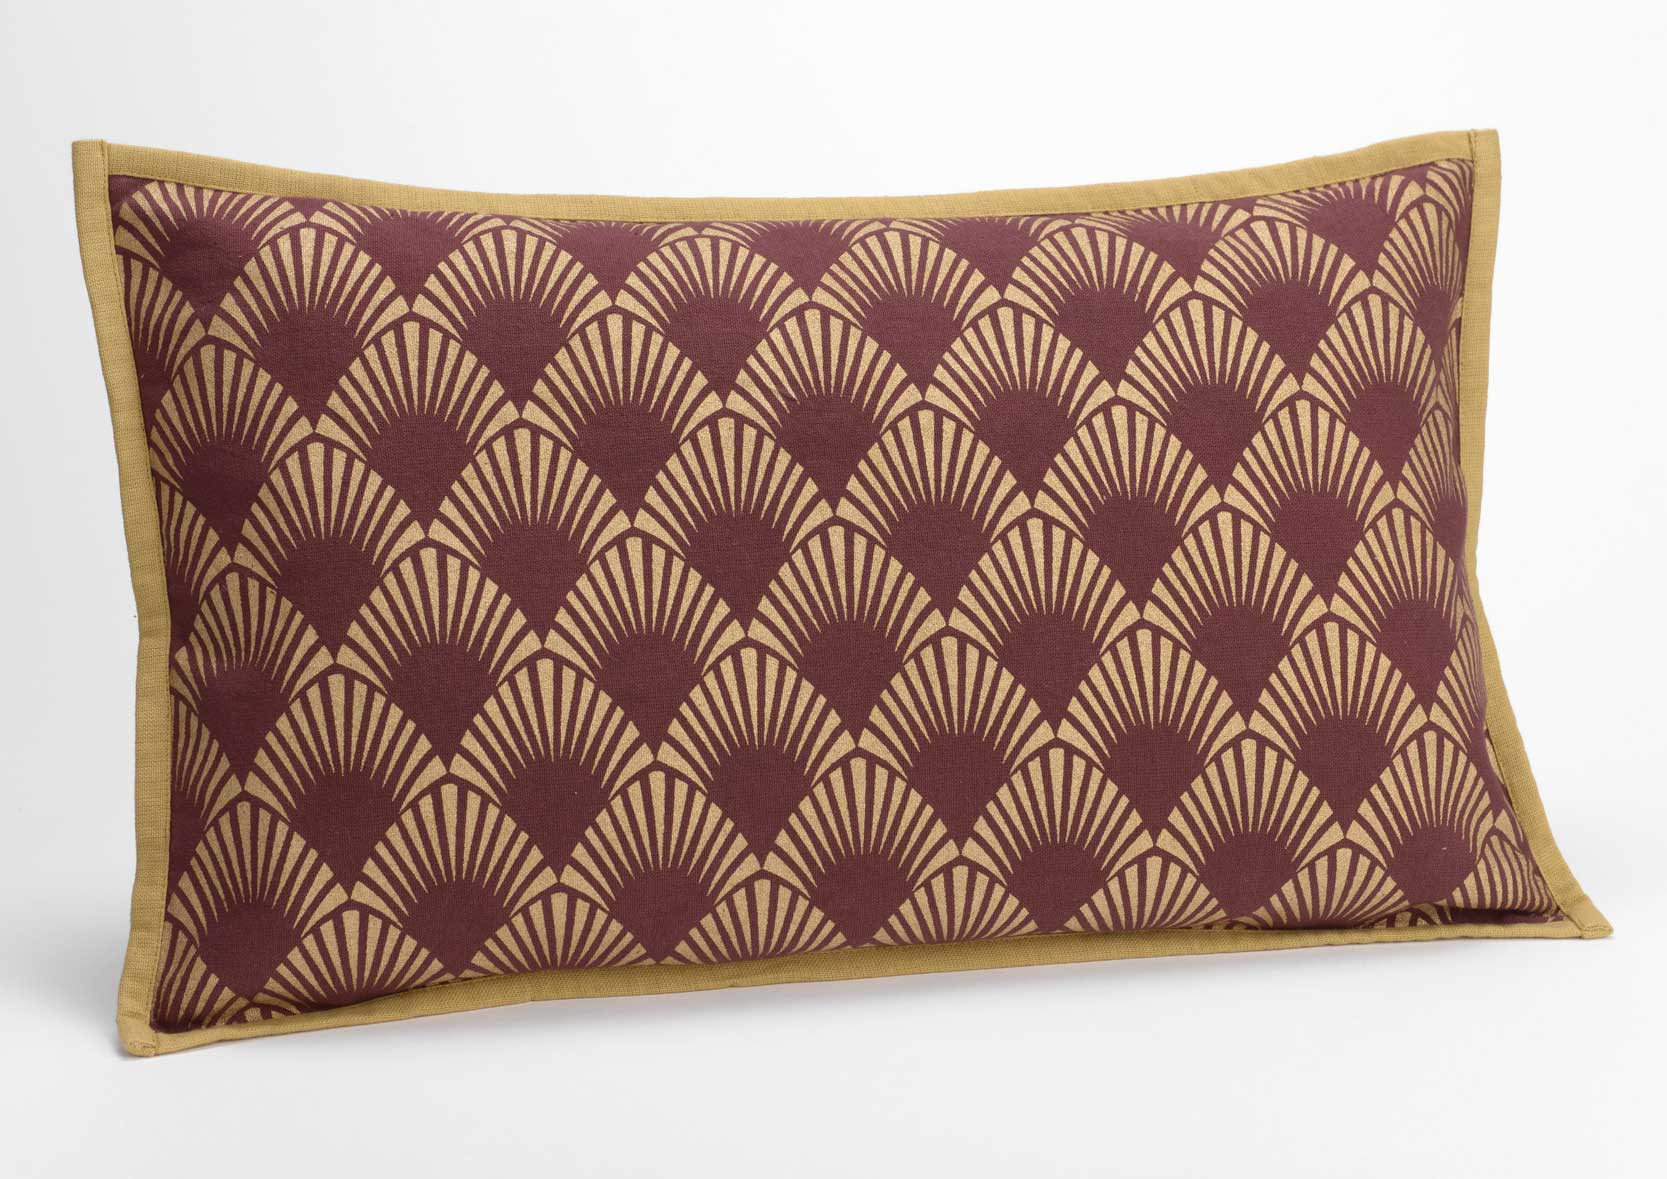 image_Coussin motif paon